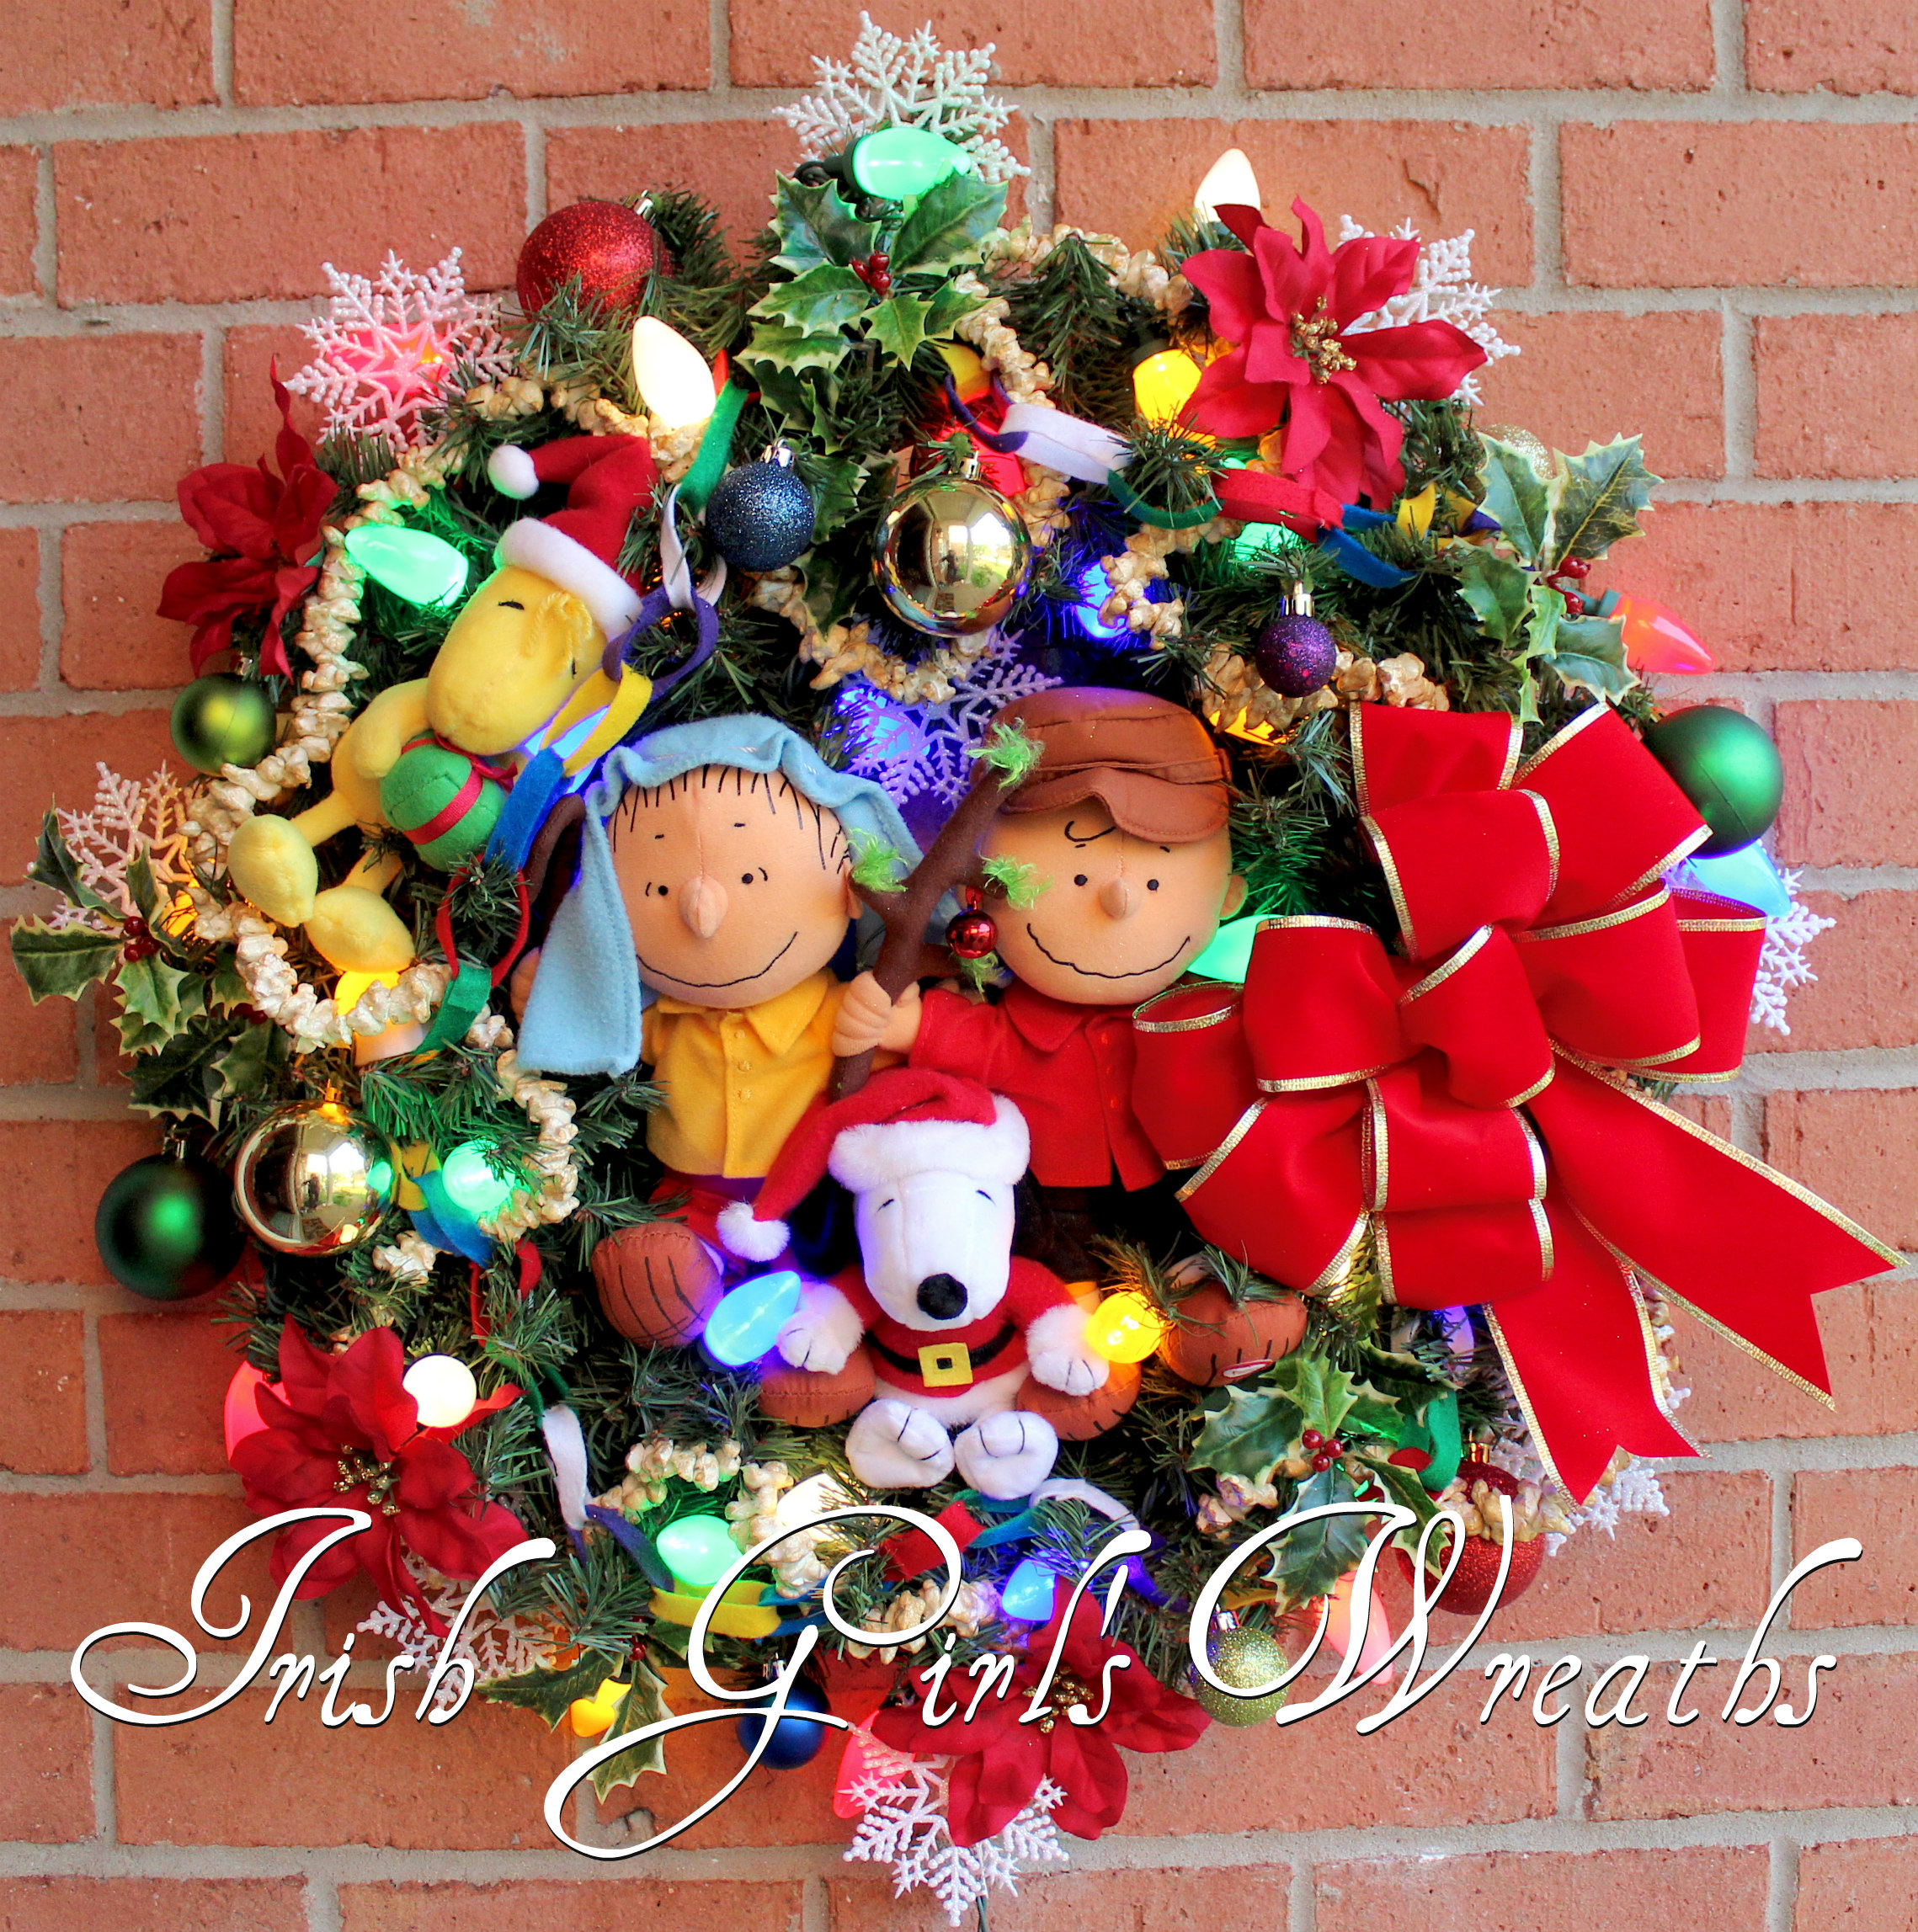 Merry Christmas Charlie Brown Peanuts Gang Wreath, for Cayla